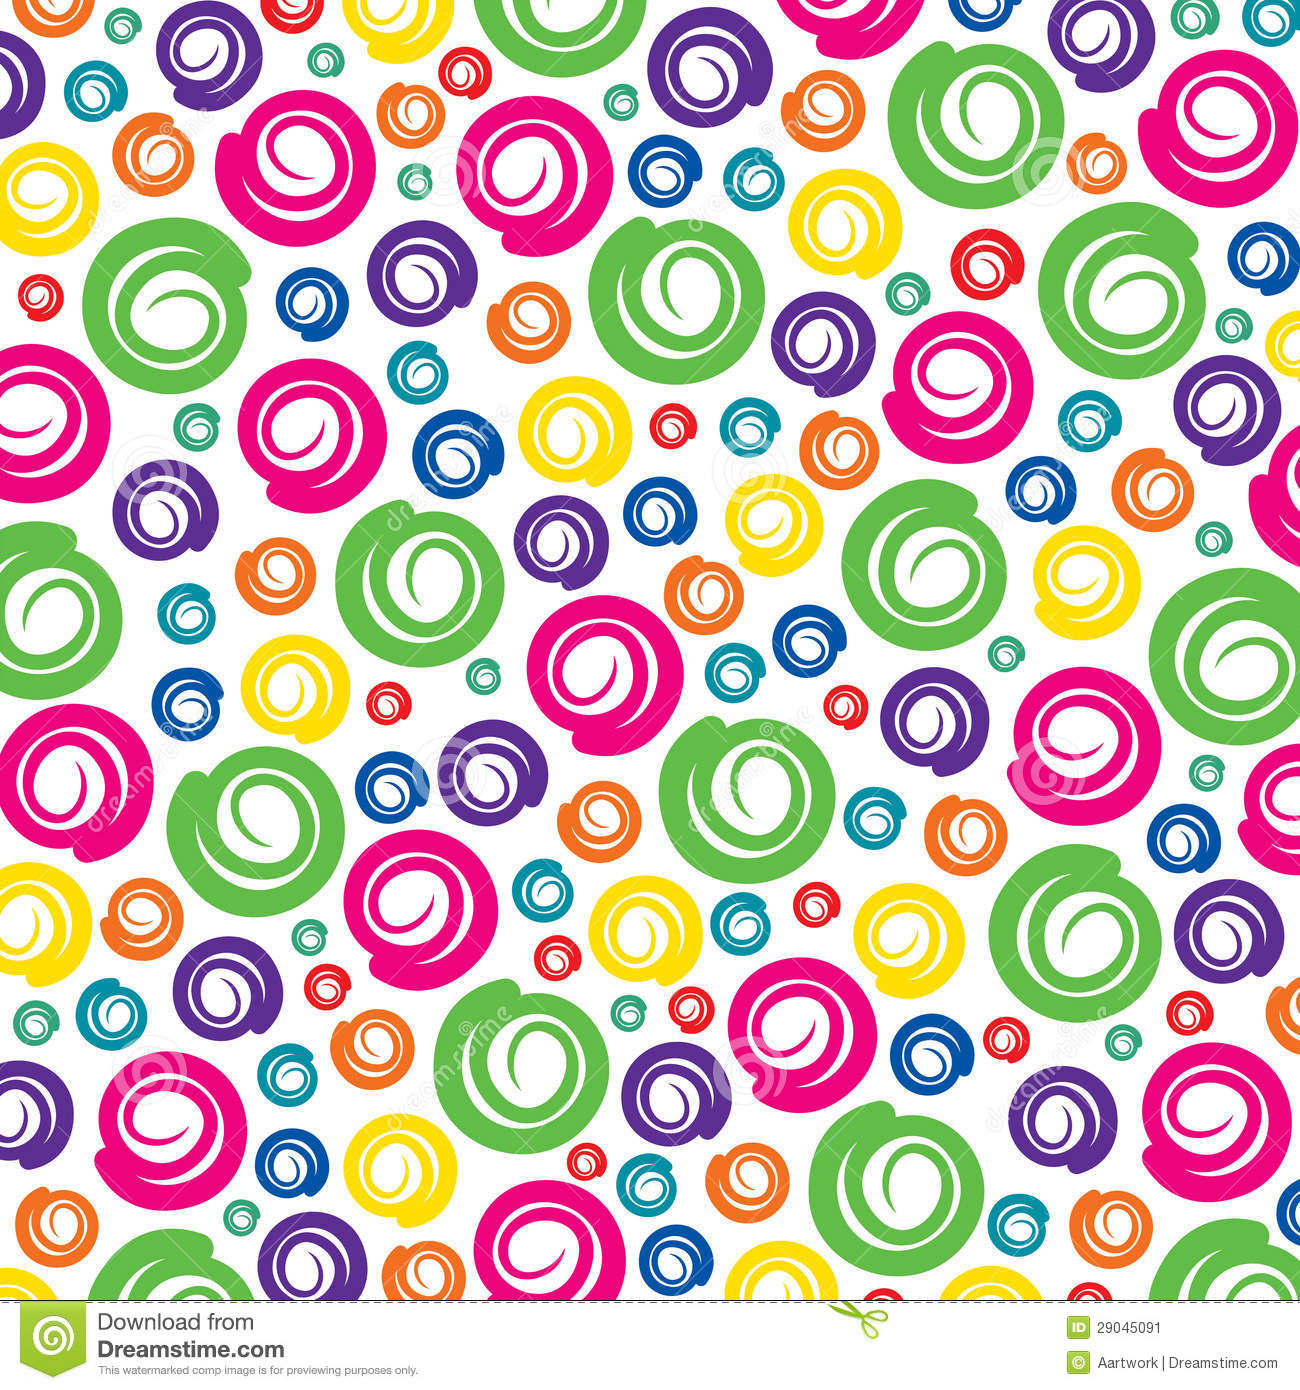 Colorful Swirl Pattern Background Stock Image - Image: 29045091